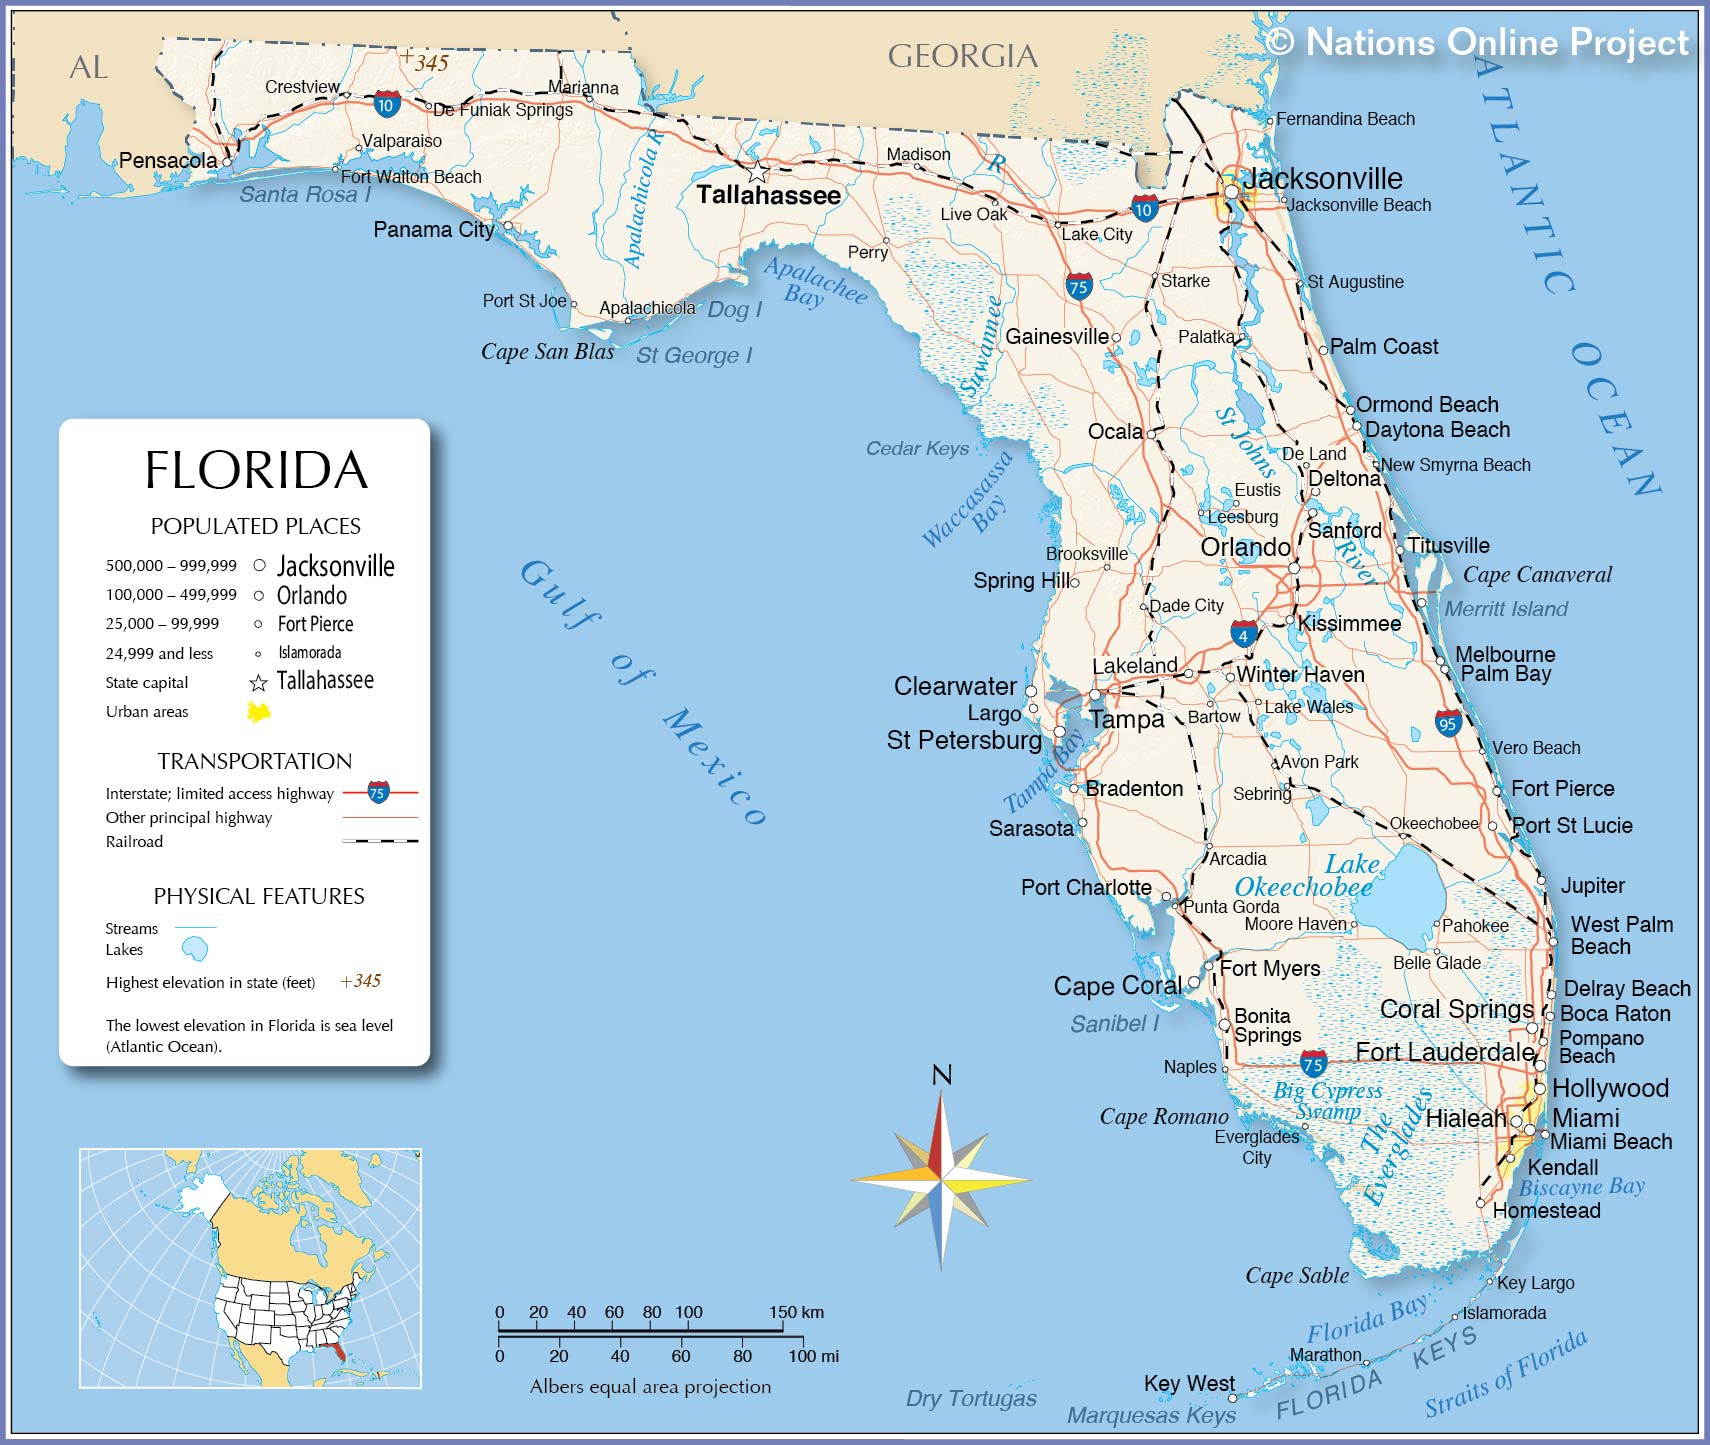 Reference Maps Of Florida, Usa - Nations Online Project - Lake Wales Florida Map